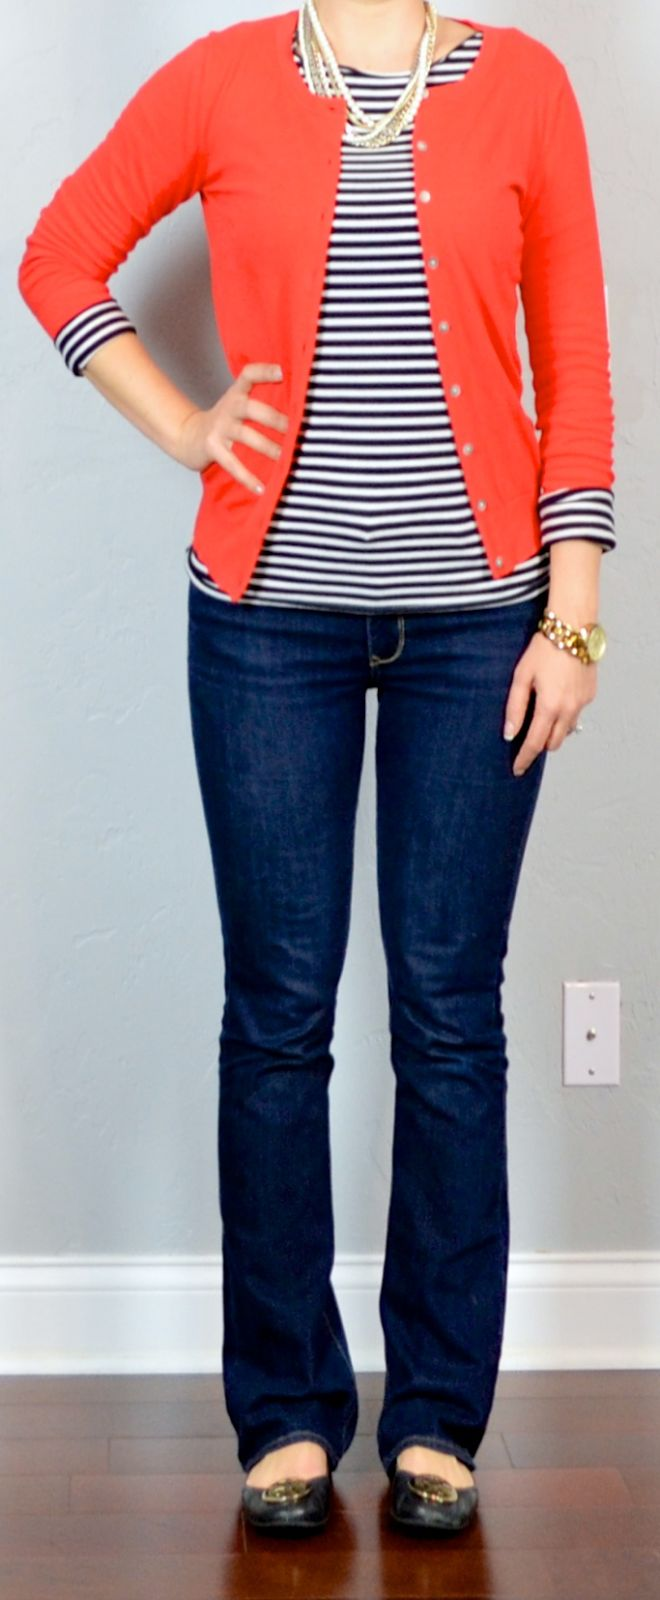 Love the idea of folding striped sleeves over the cardigan. So simple yet so cute.